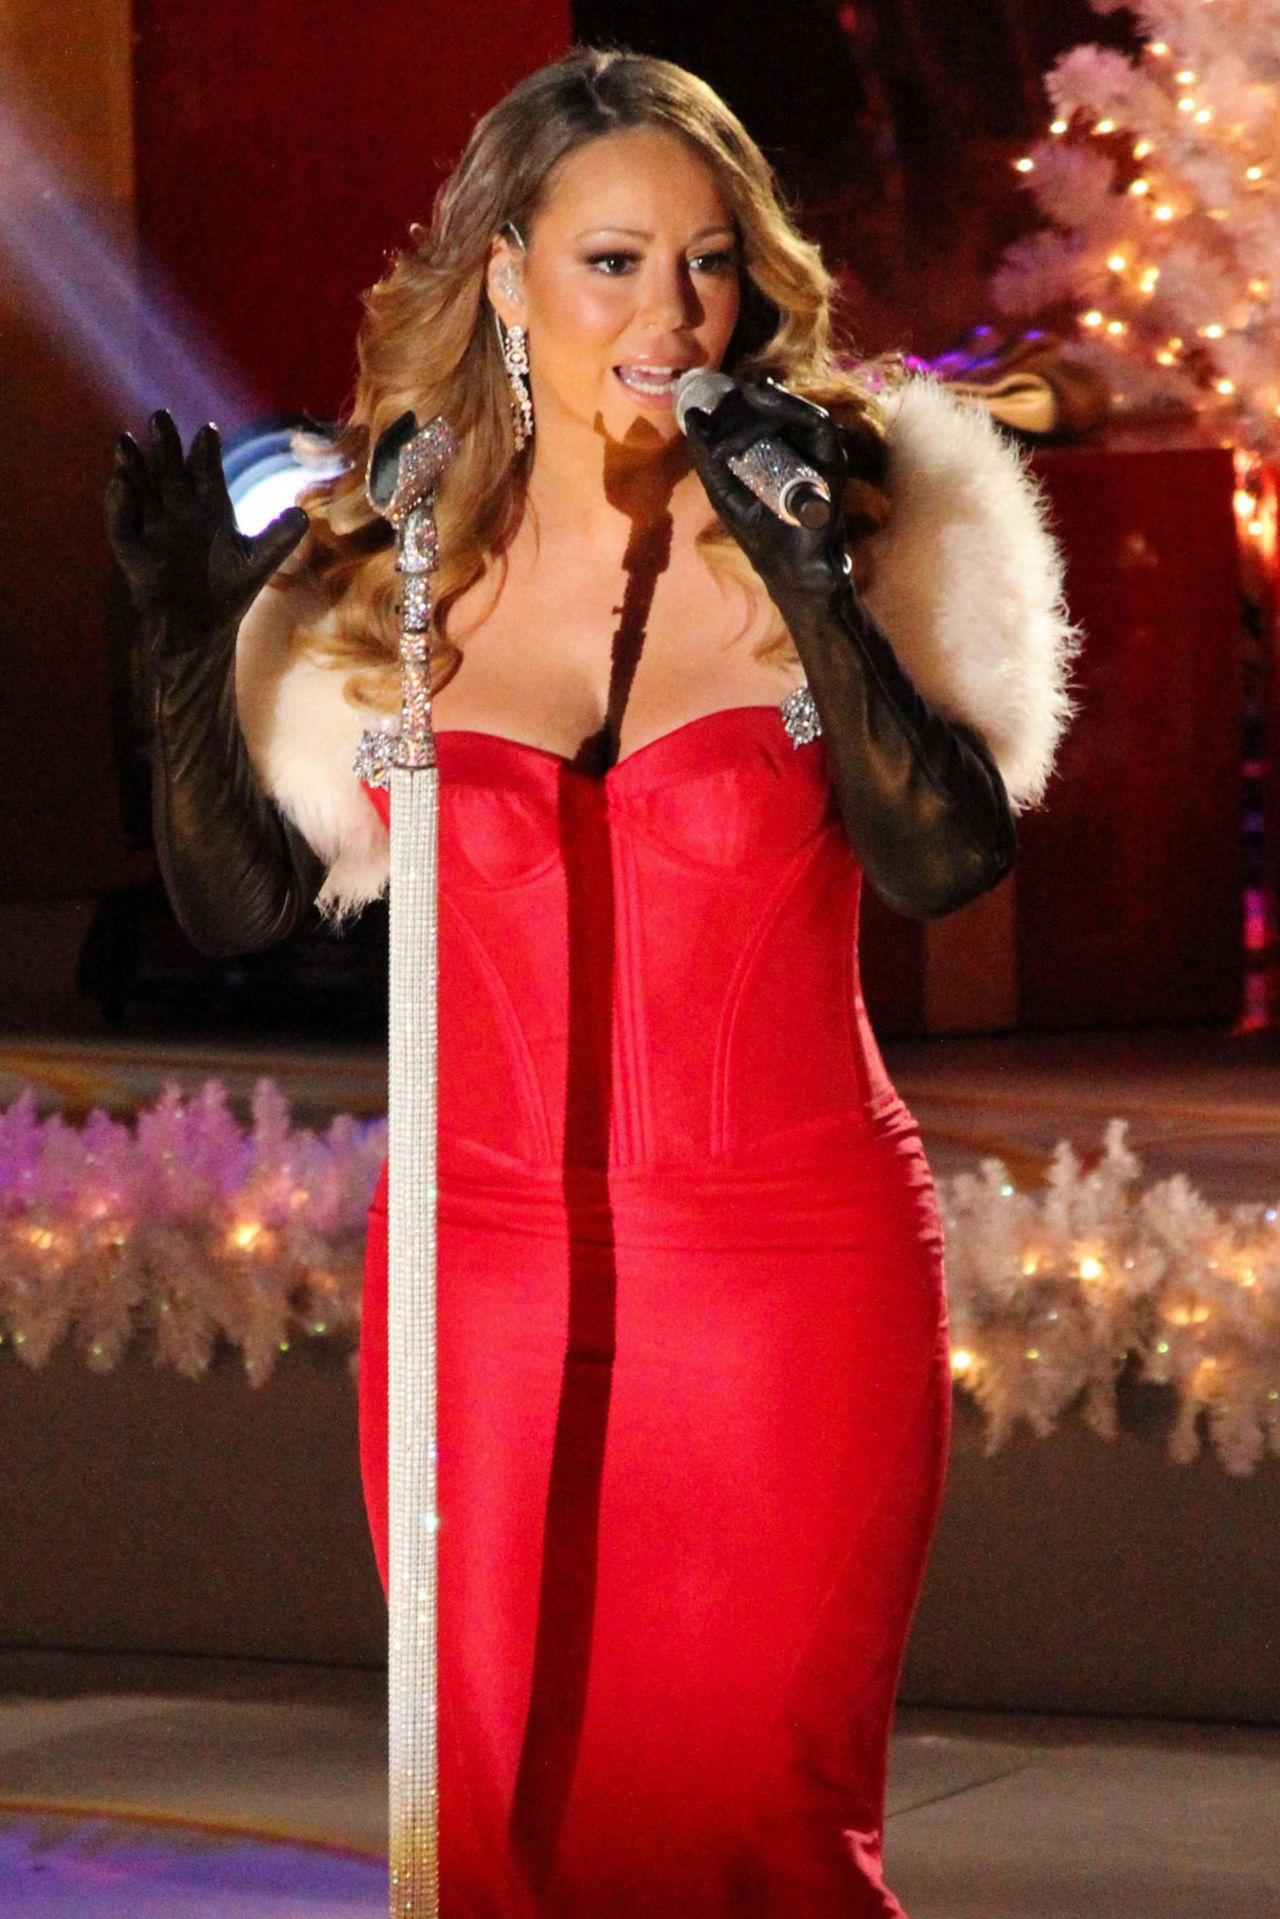 Mariah Carey Performs at 81st Annual Rockefeller Center Christmas Tree Lighting u2013 Dec. 2013  sc 1 st  CelebMafia & Mariah Carey Performs at 81st Annual Rockefeller Center Christmas ...